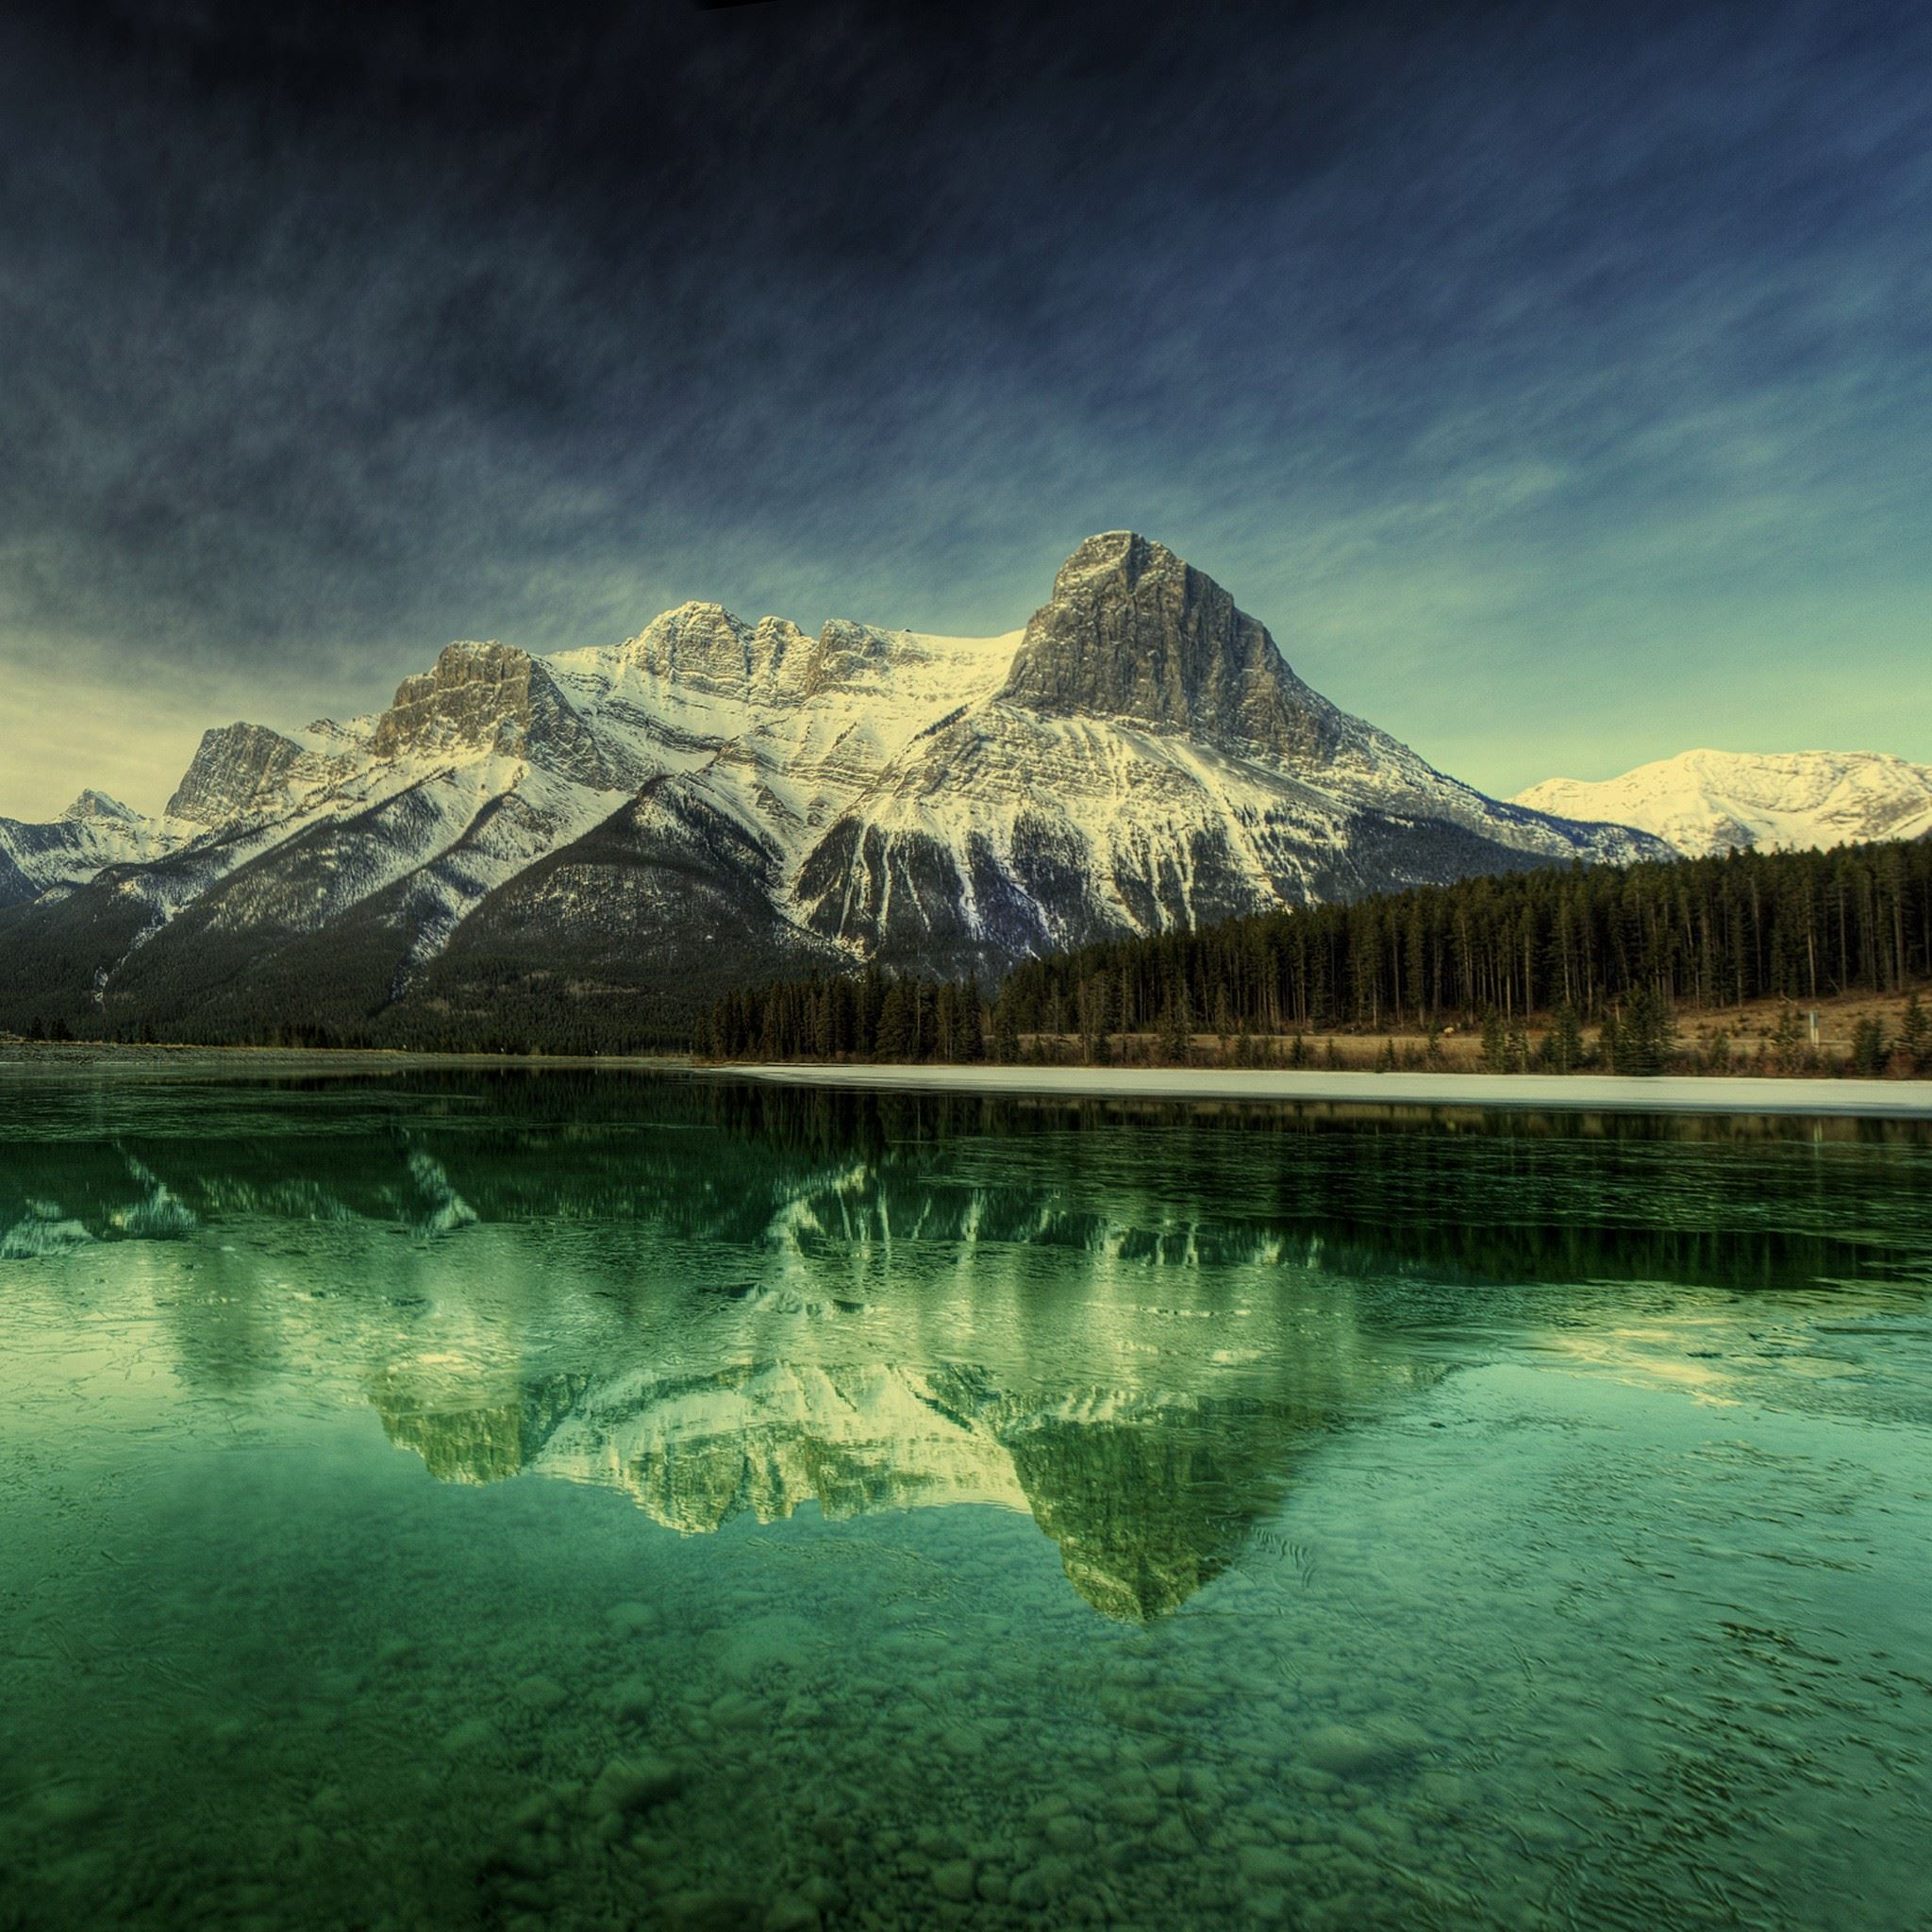 Mountain Crystal Lake Reflection iPad Air wallpaper